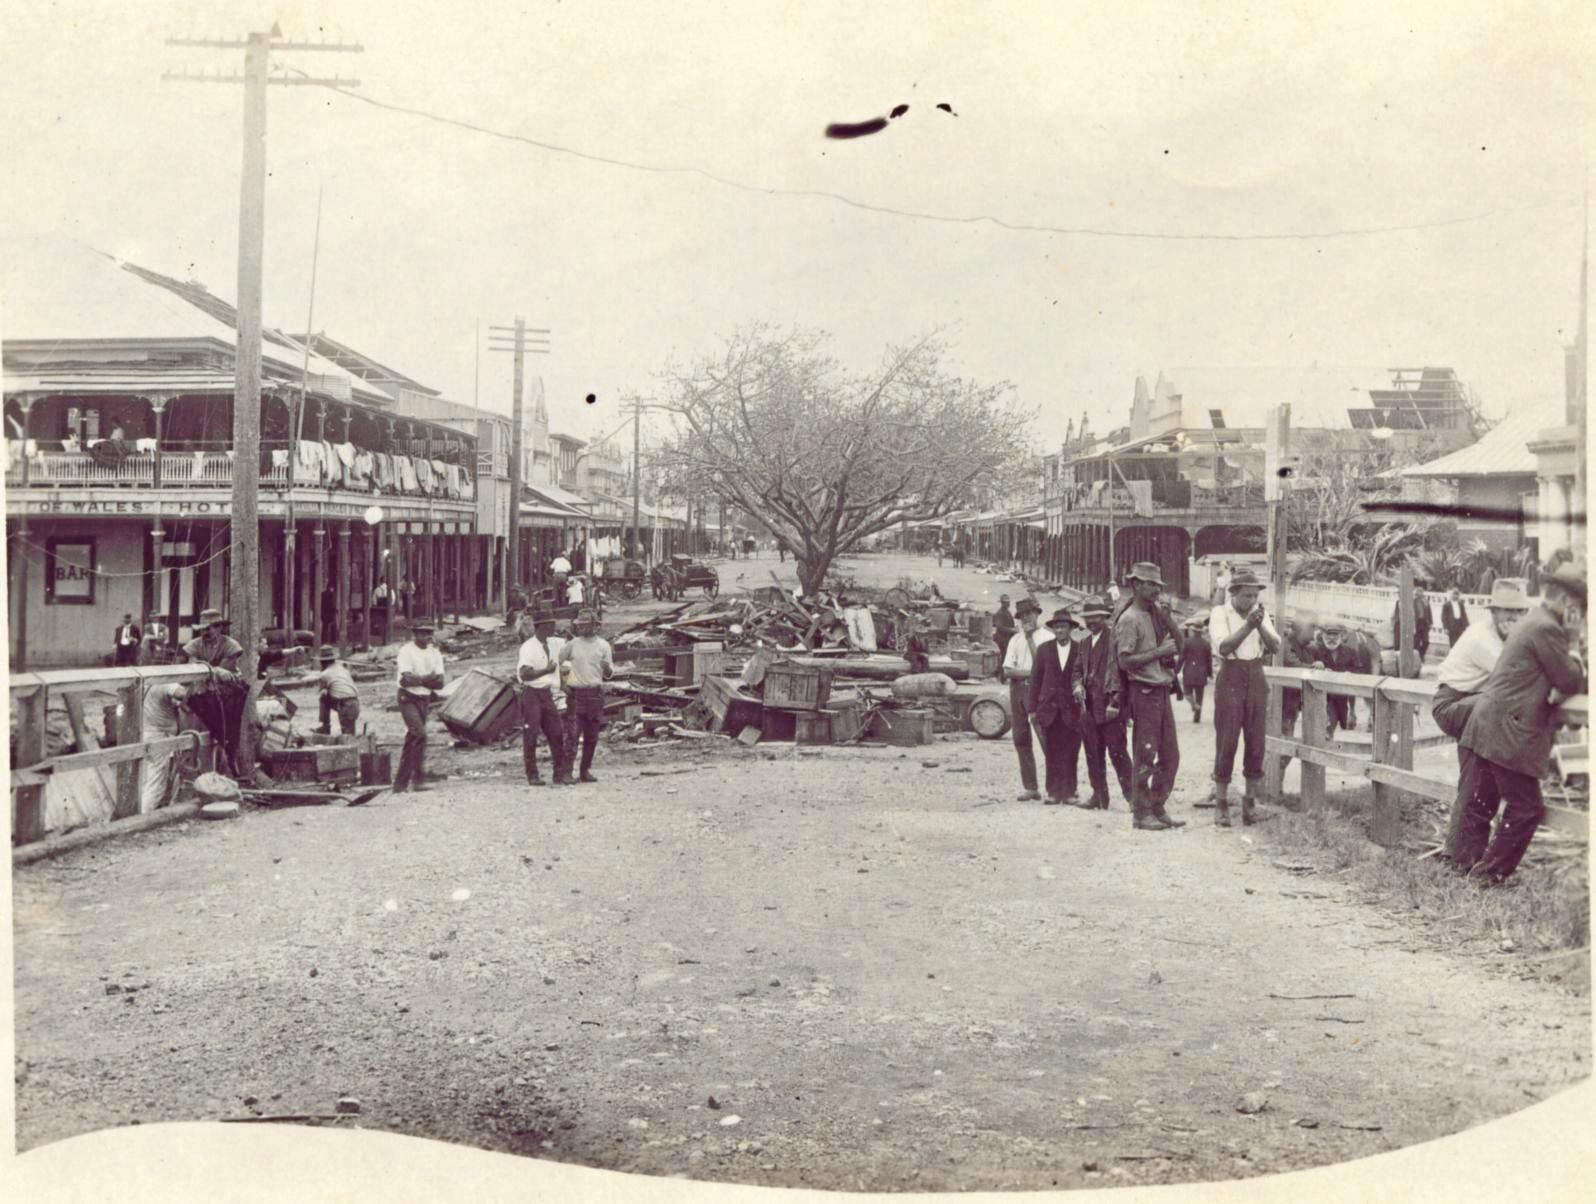 Sydney Street in Mackay after the cyclone in 1918.